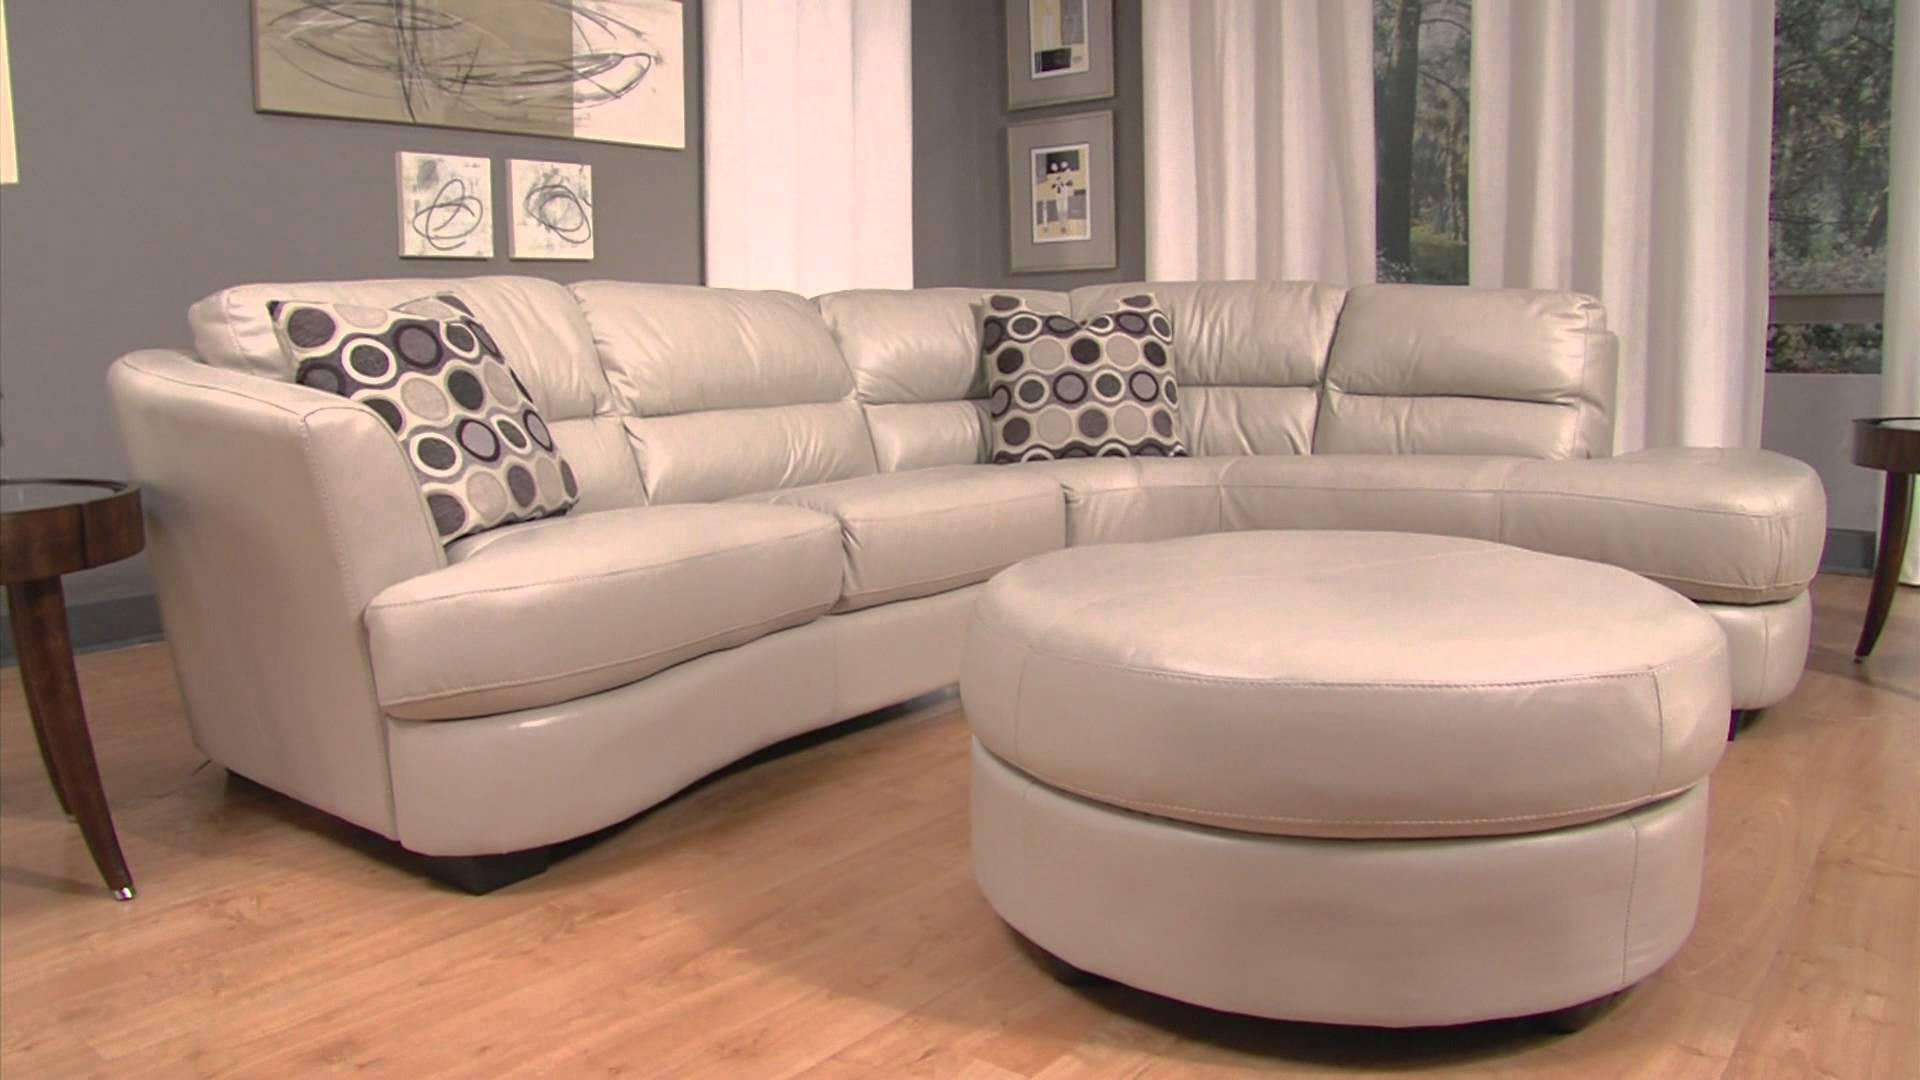 Sofas Center : Costco Recliner Sofa Sectional With Chaise For Berkline Sectional Sofa (Image 11 of 15)